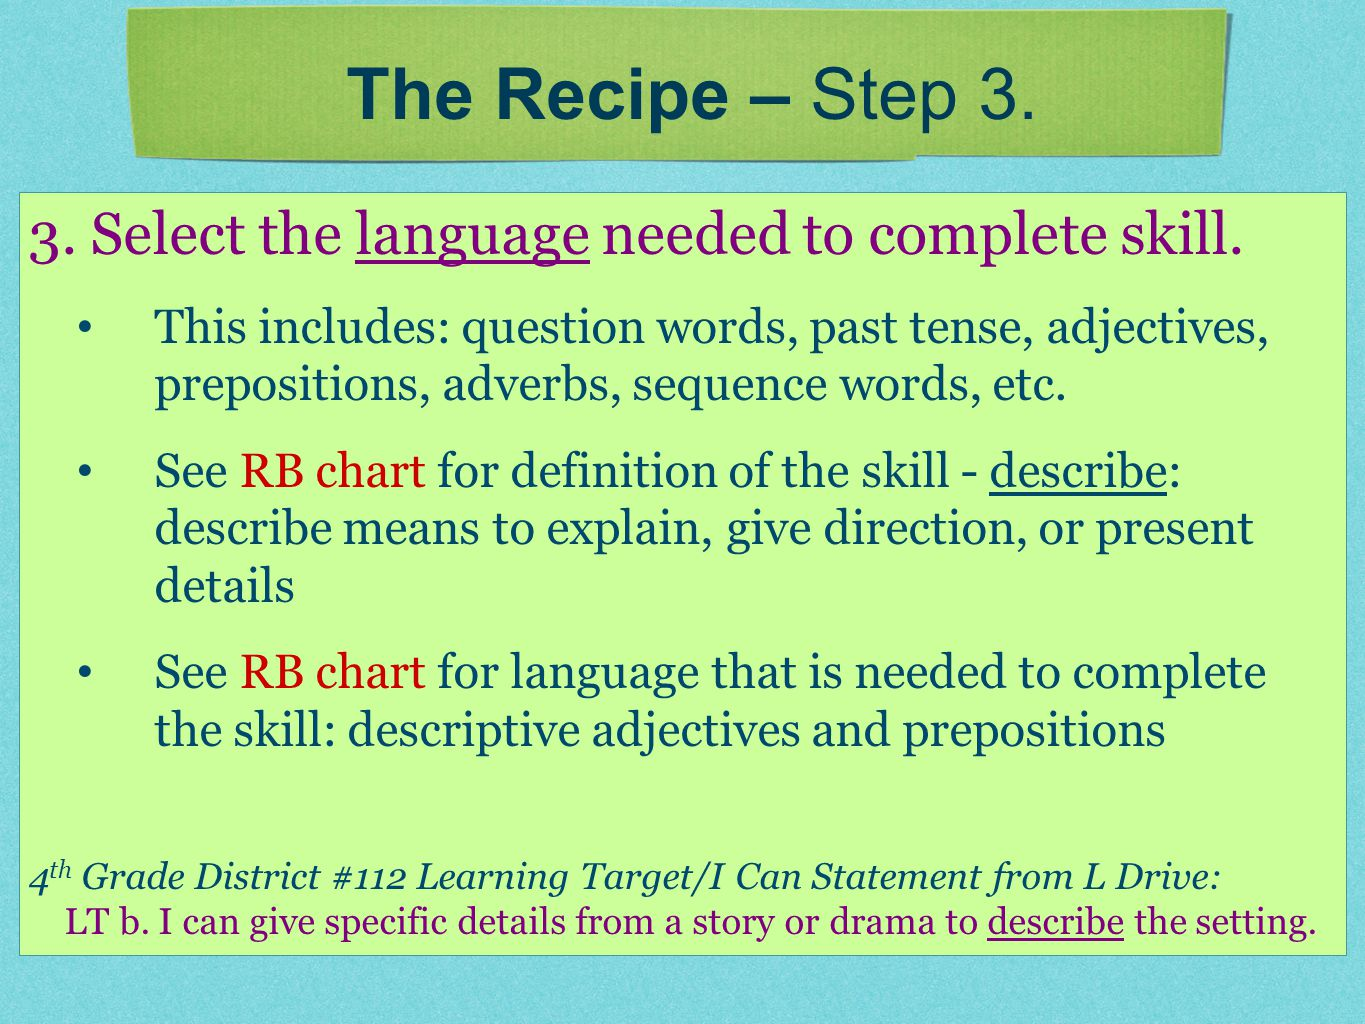 3. Select the language needed to complete skill. This includes: question words, past tense, adjectives, prepositions, adverbs, sequence words, etc. Se